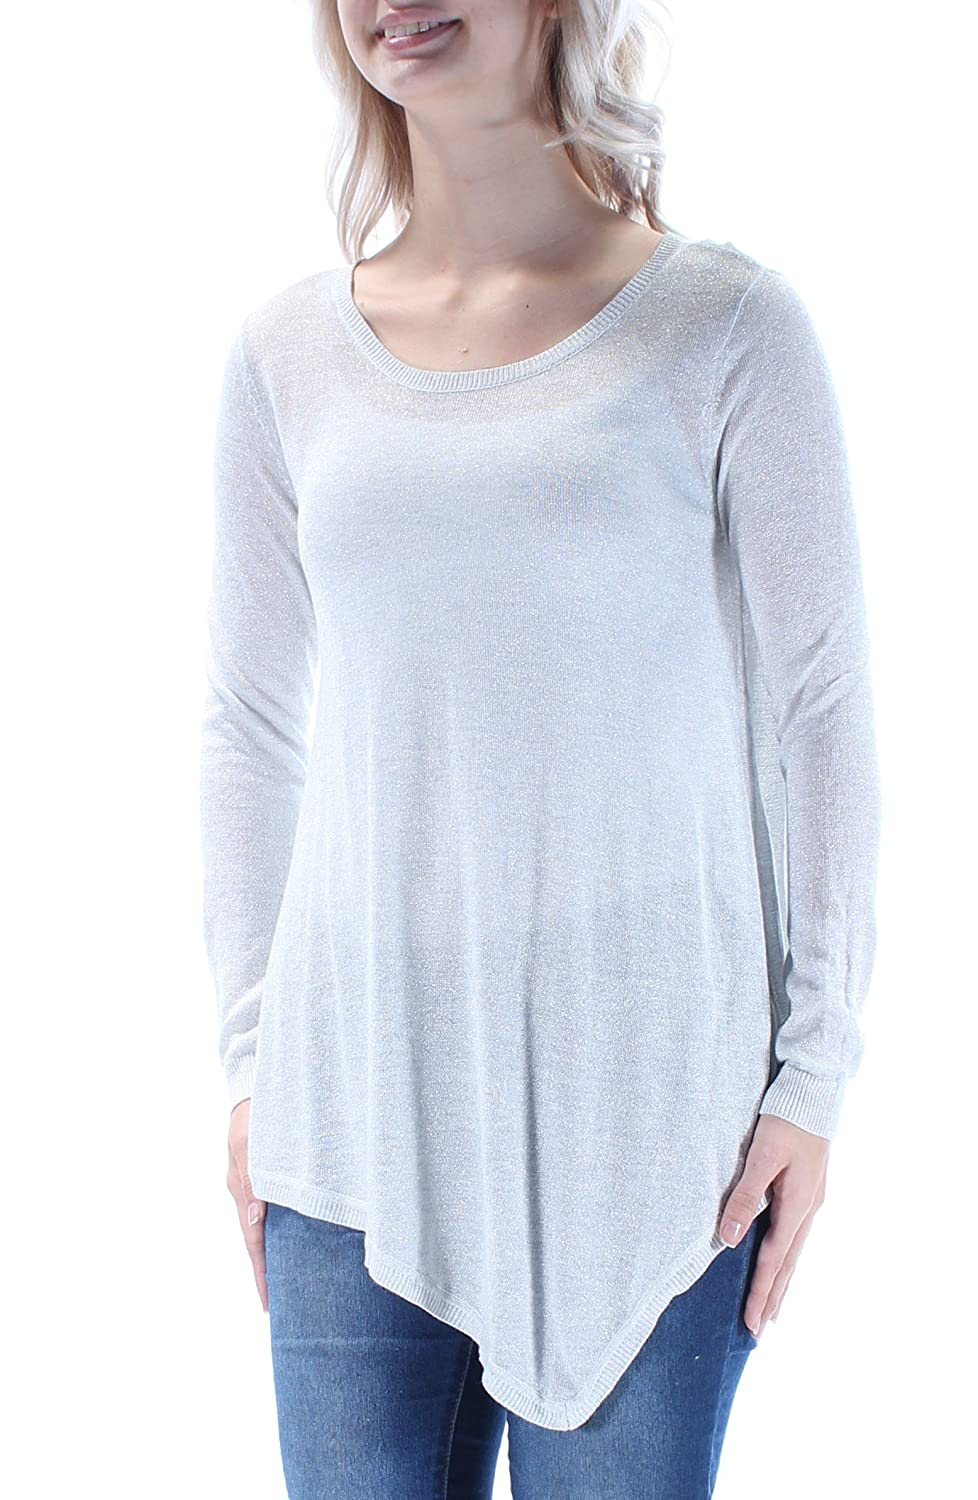 Joie $218 Womens New 1177 Silver Glitter Sheer Long Sleeve Trapeze Top M B+B